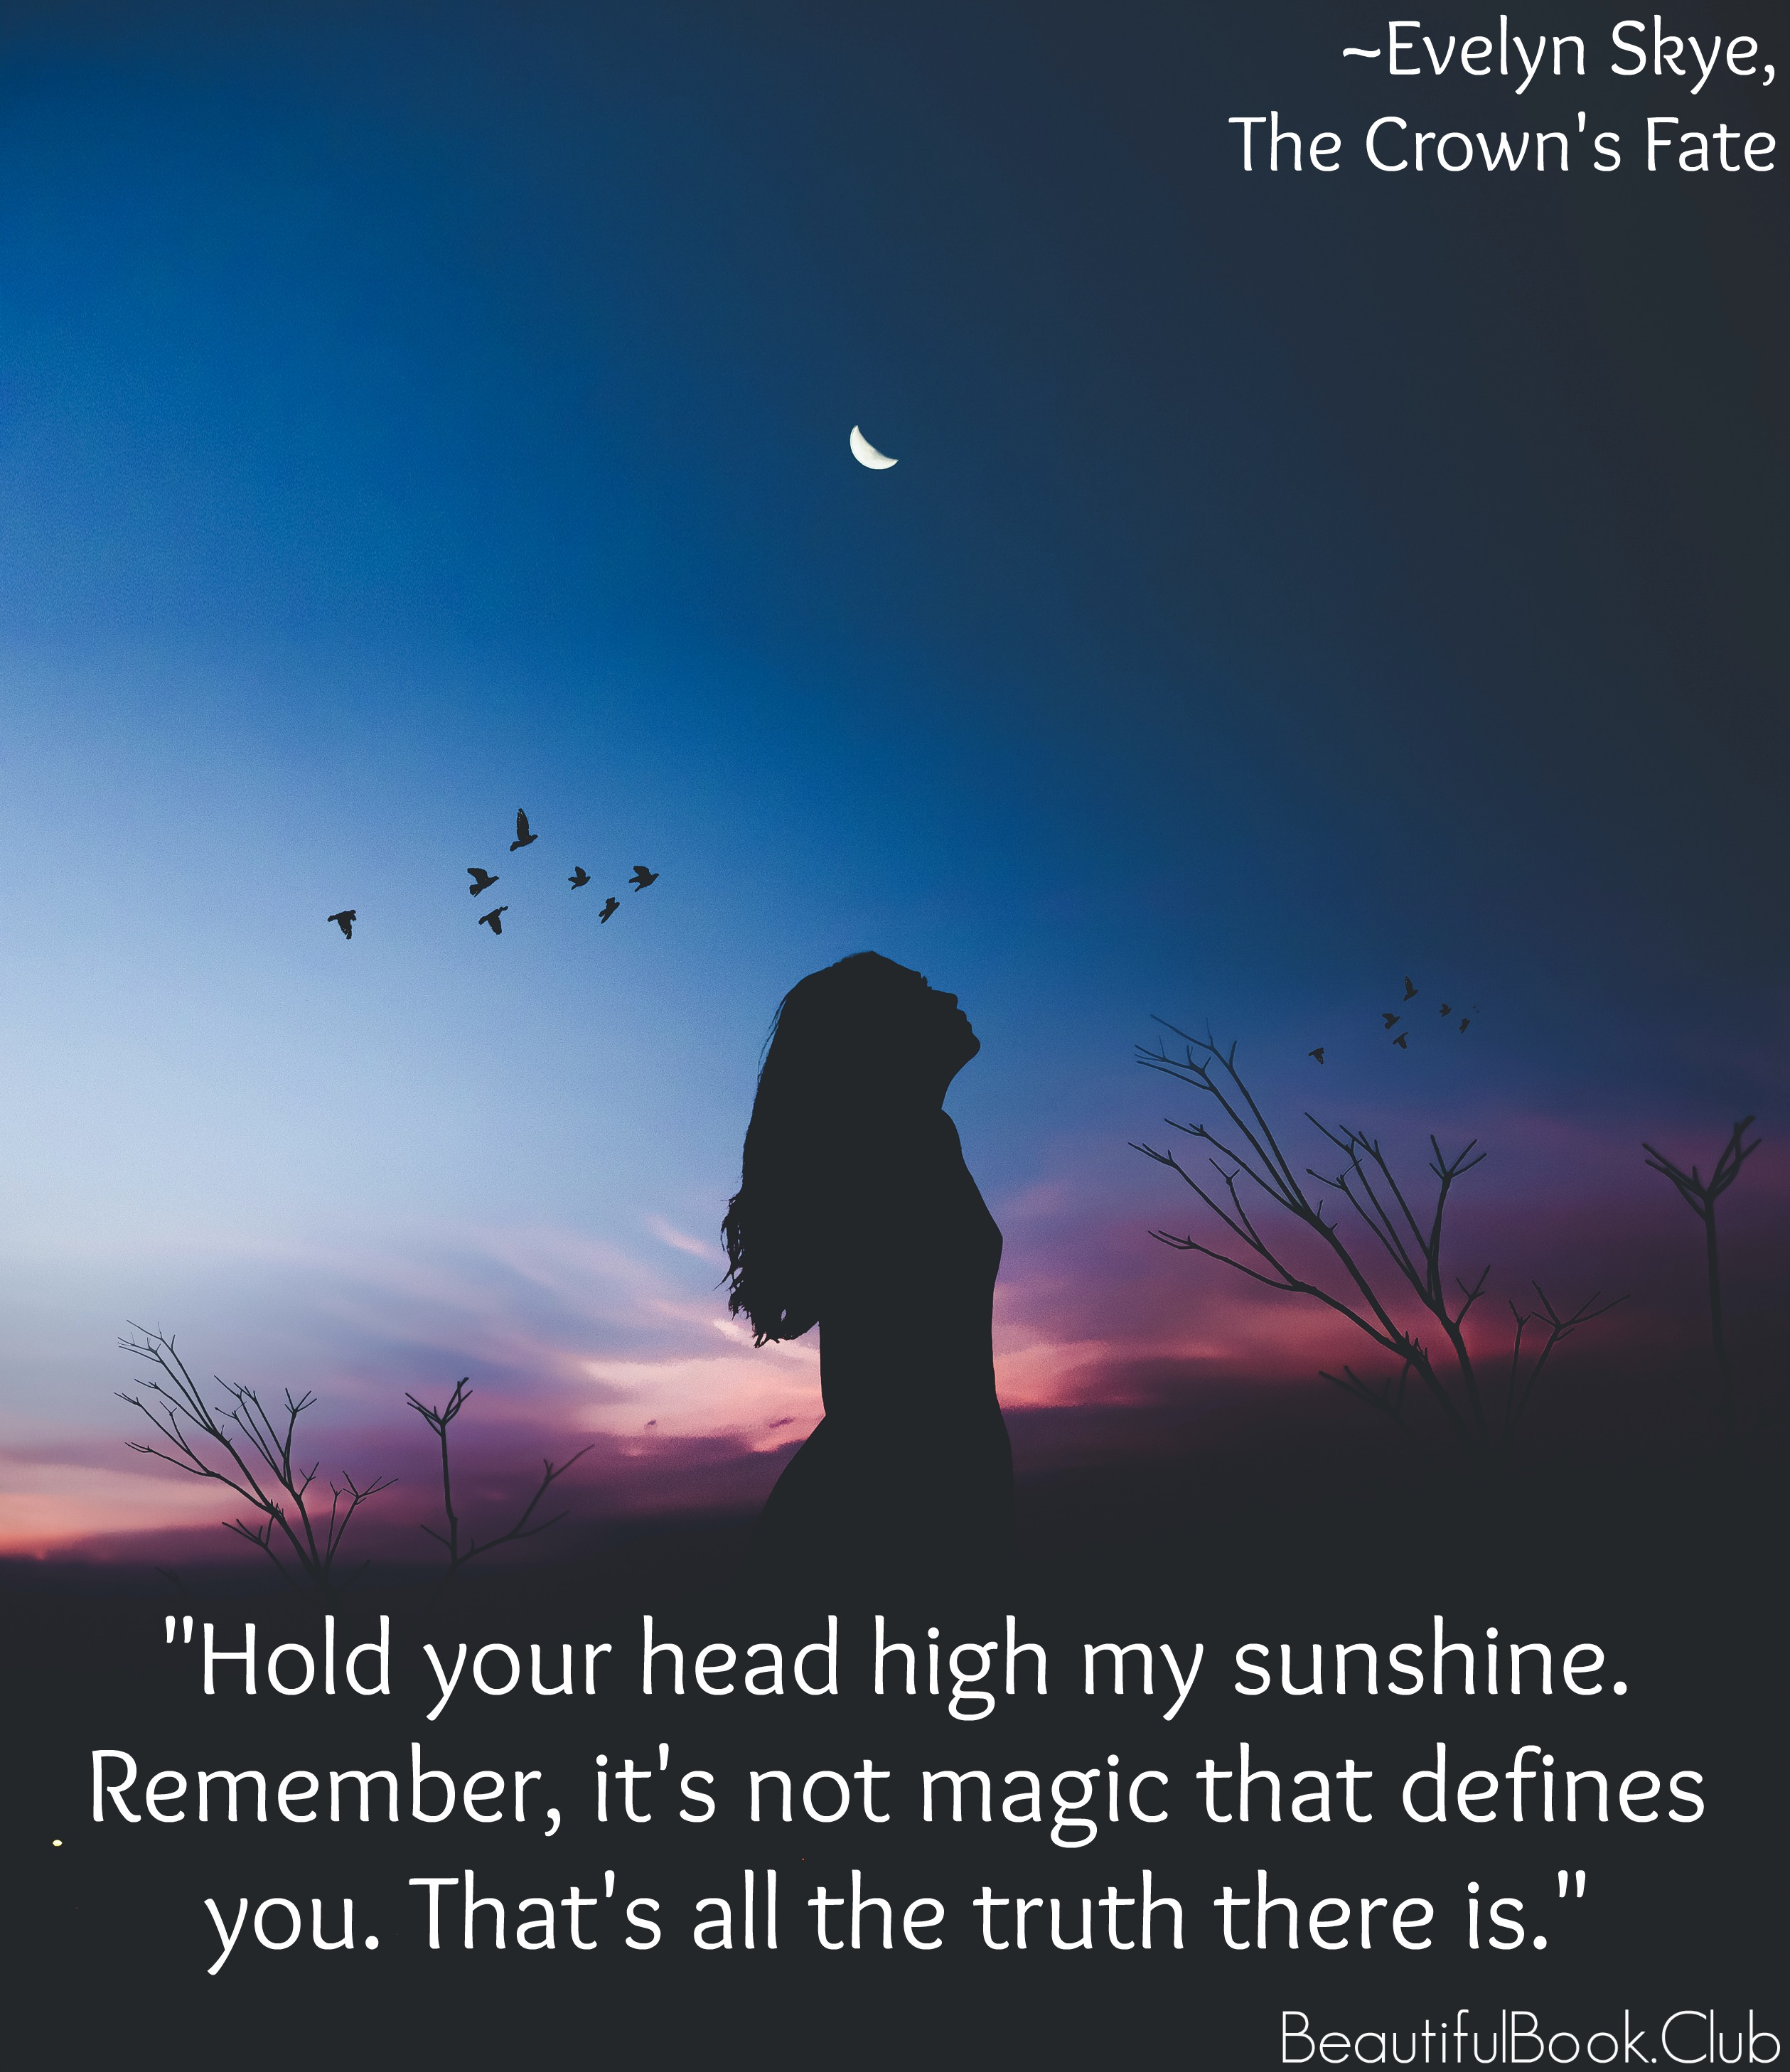 The Crown's Fate by Evelyn Skye quote Hold your head high my sunshine. Remember, it's not magic that defines you. That's all the